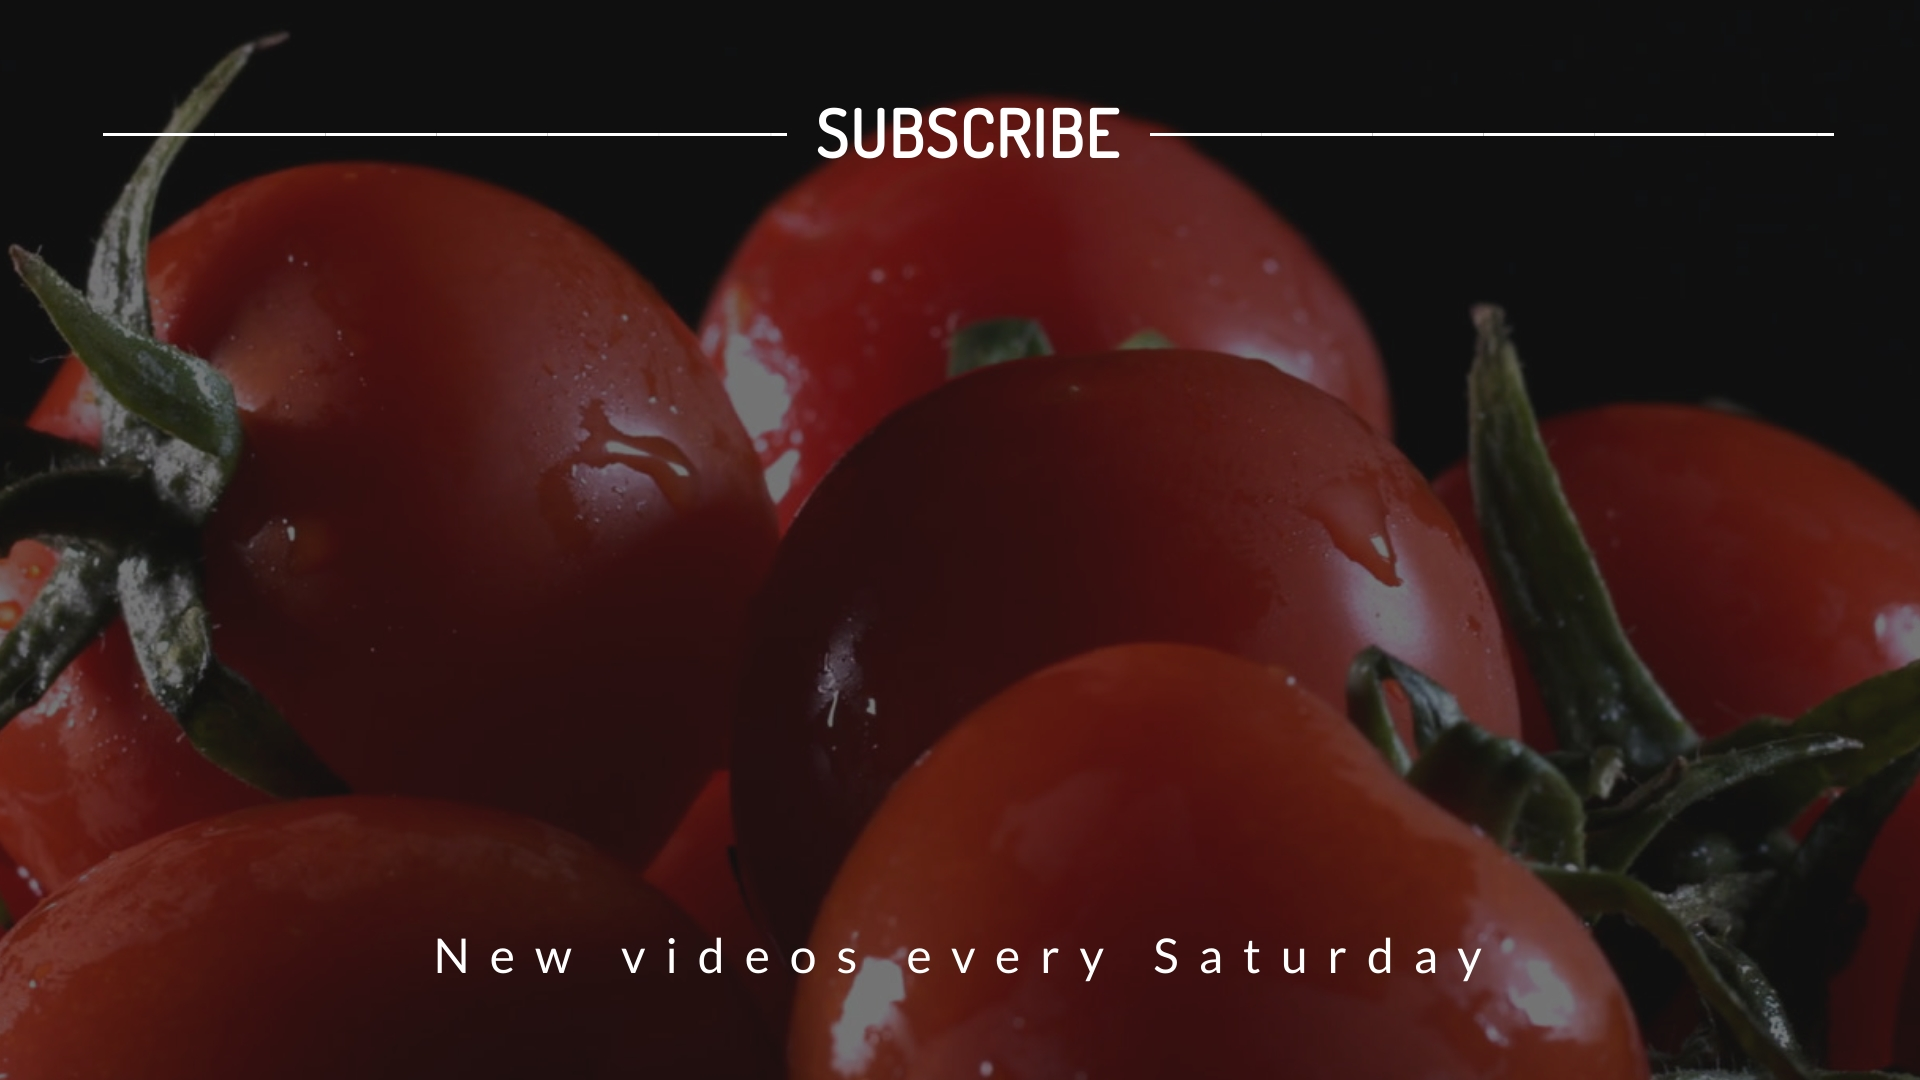 How to Keep Tomatoes Fresh Video Outro Template